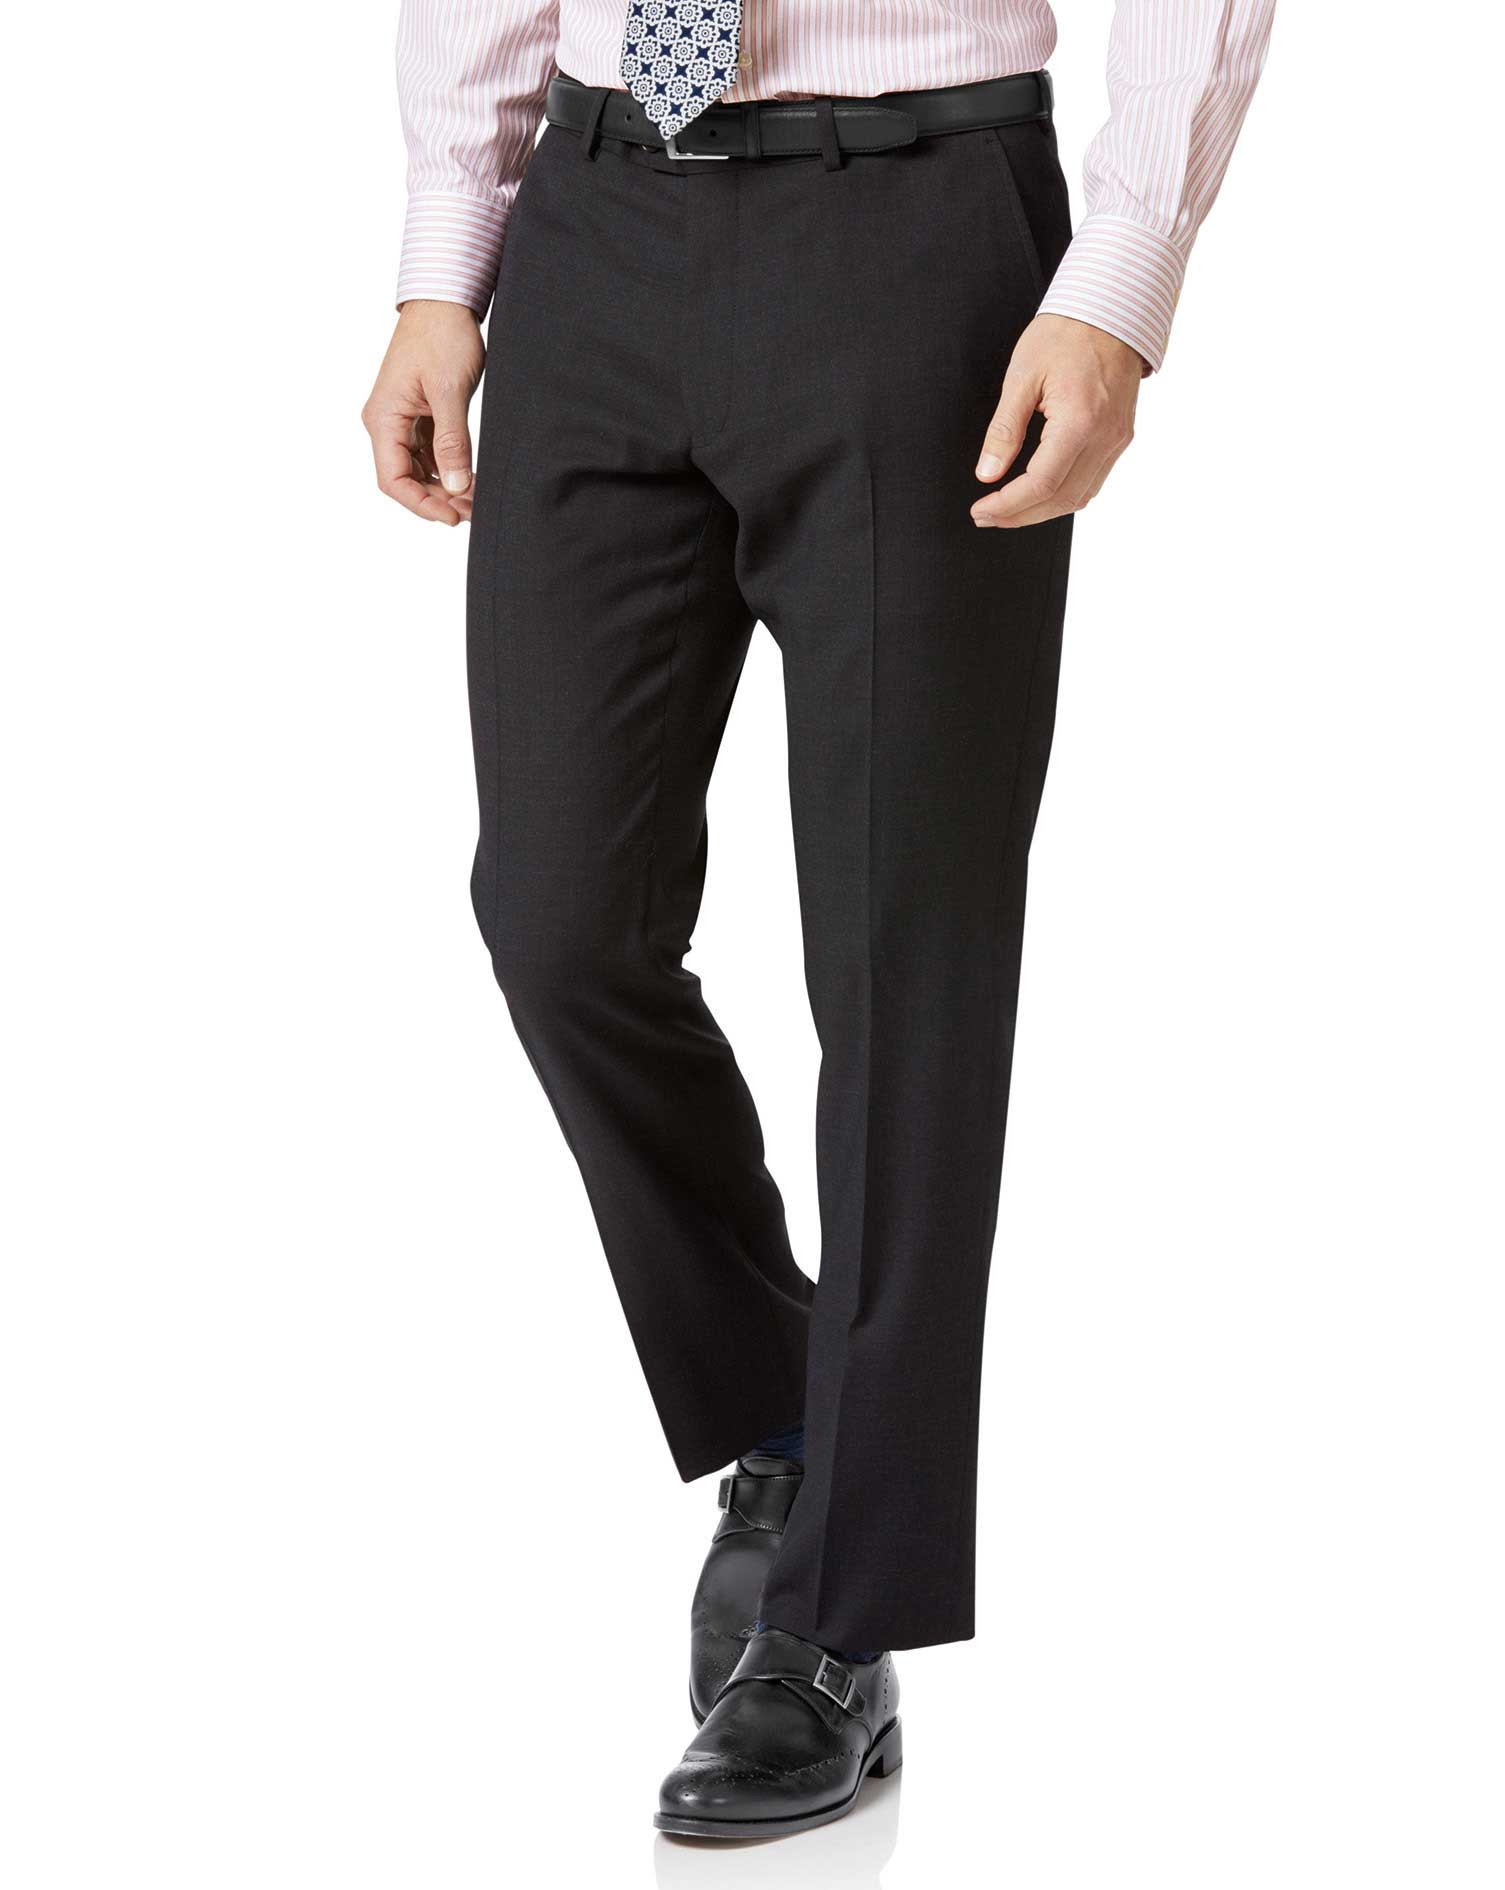 Charcoal Slim Fit Twill Business Suit Trousers Size W34 L34 by Charles Tyrwhitt